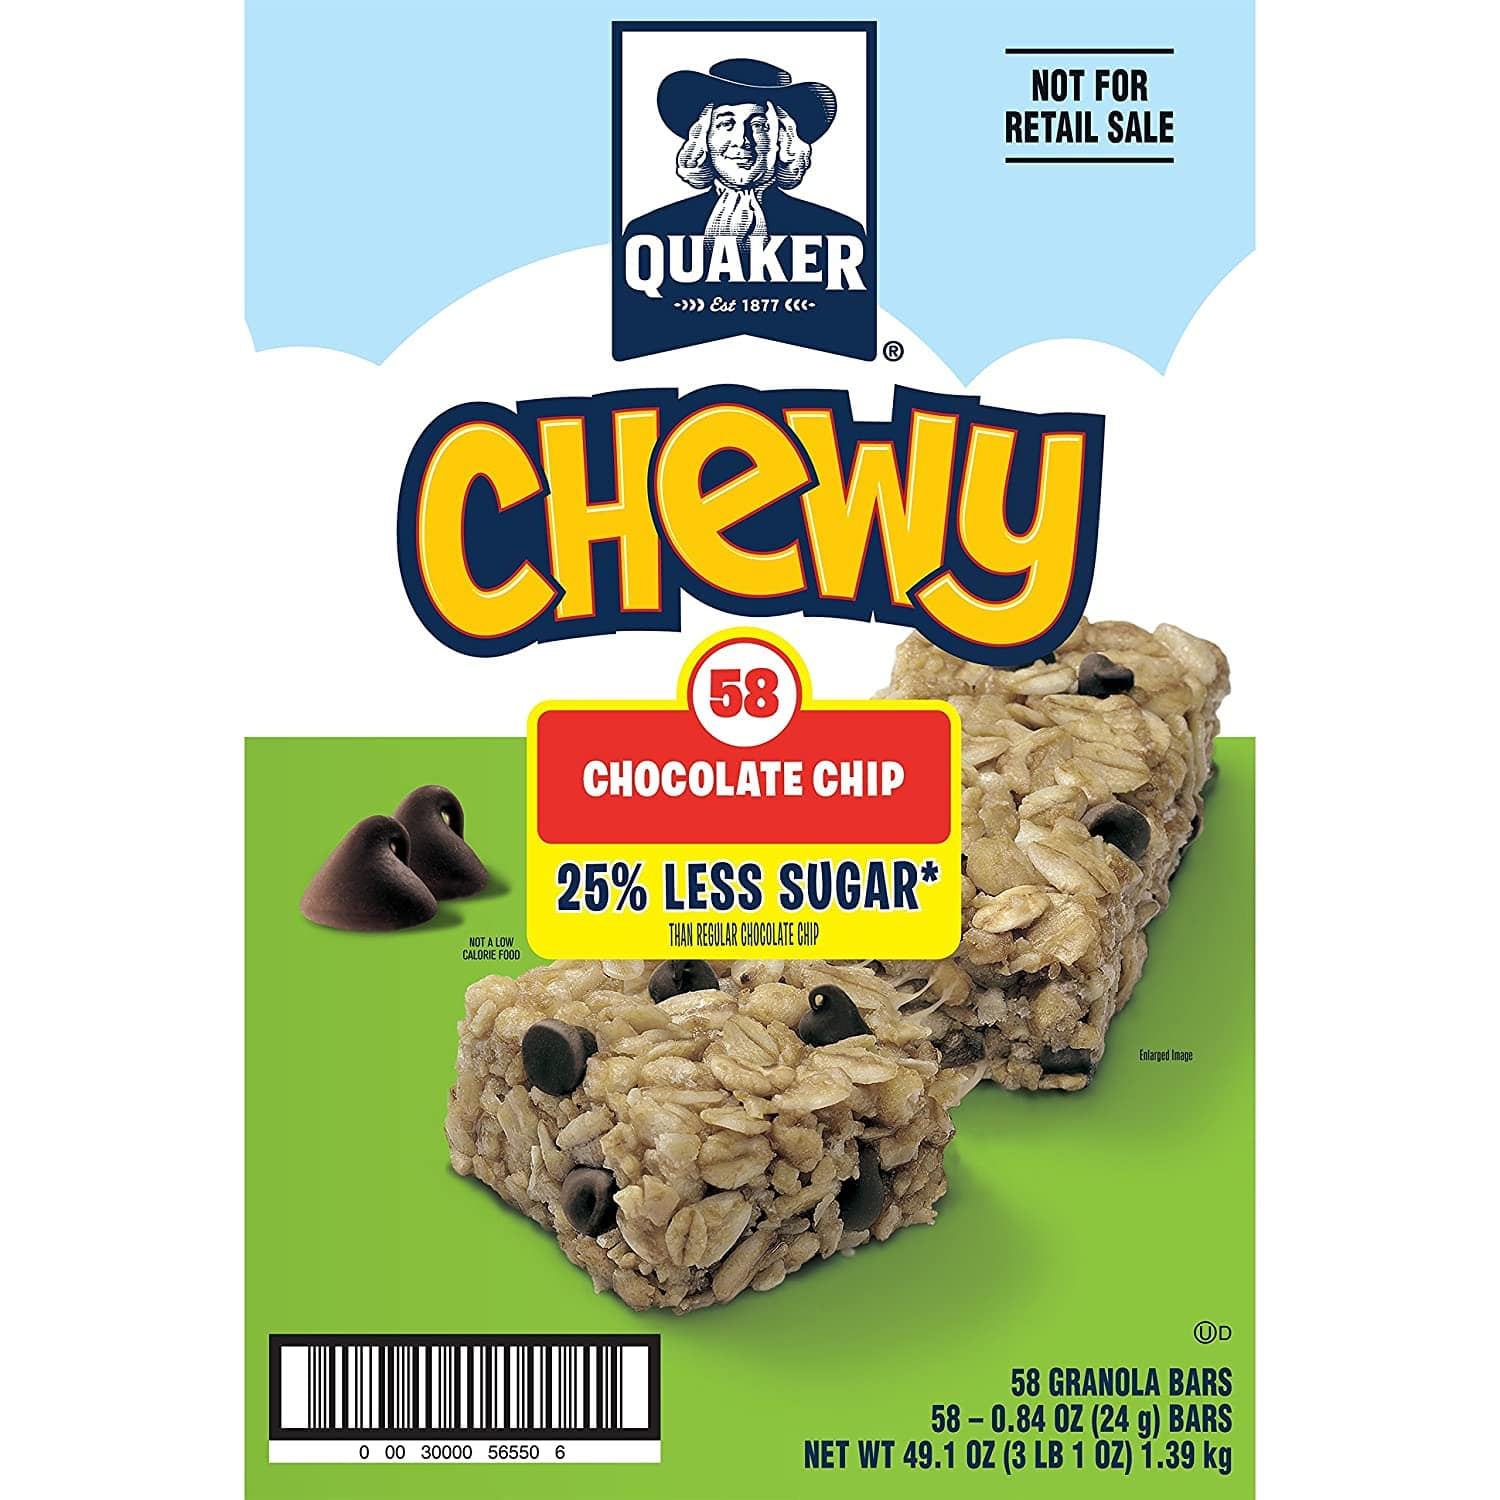 Quaker Chewy Granola Bars, 25% Less Sugar, Chocolate Chip, (58 Pack) $3.44 with s/s